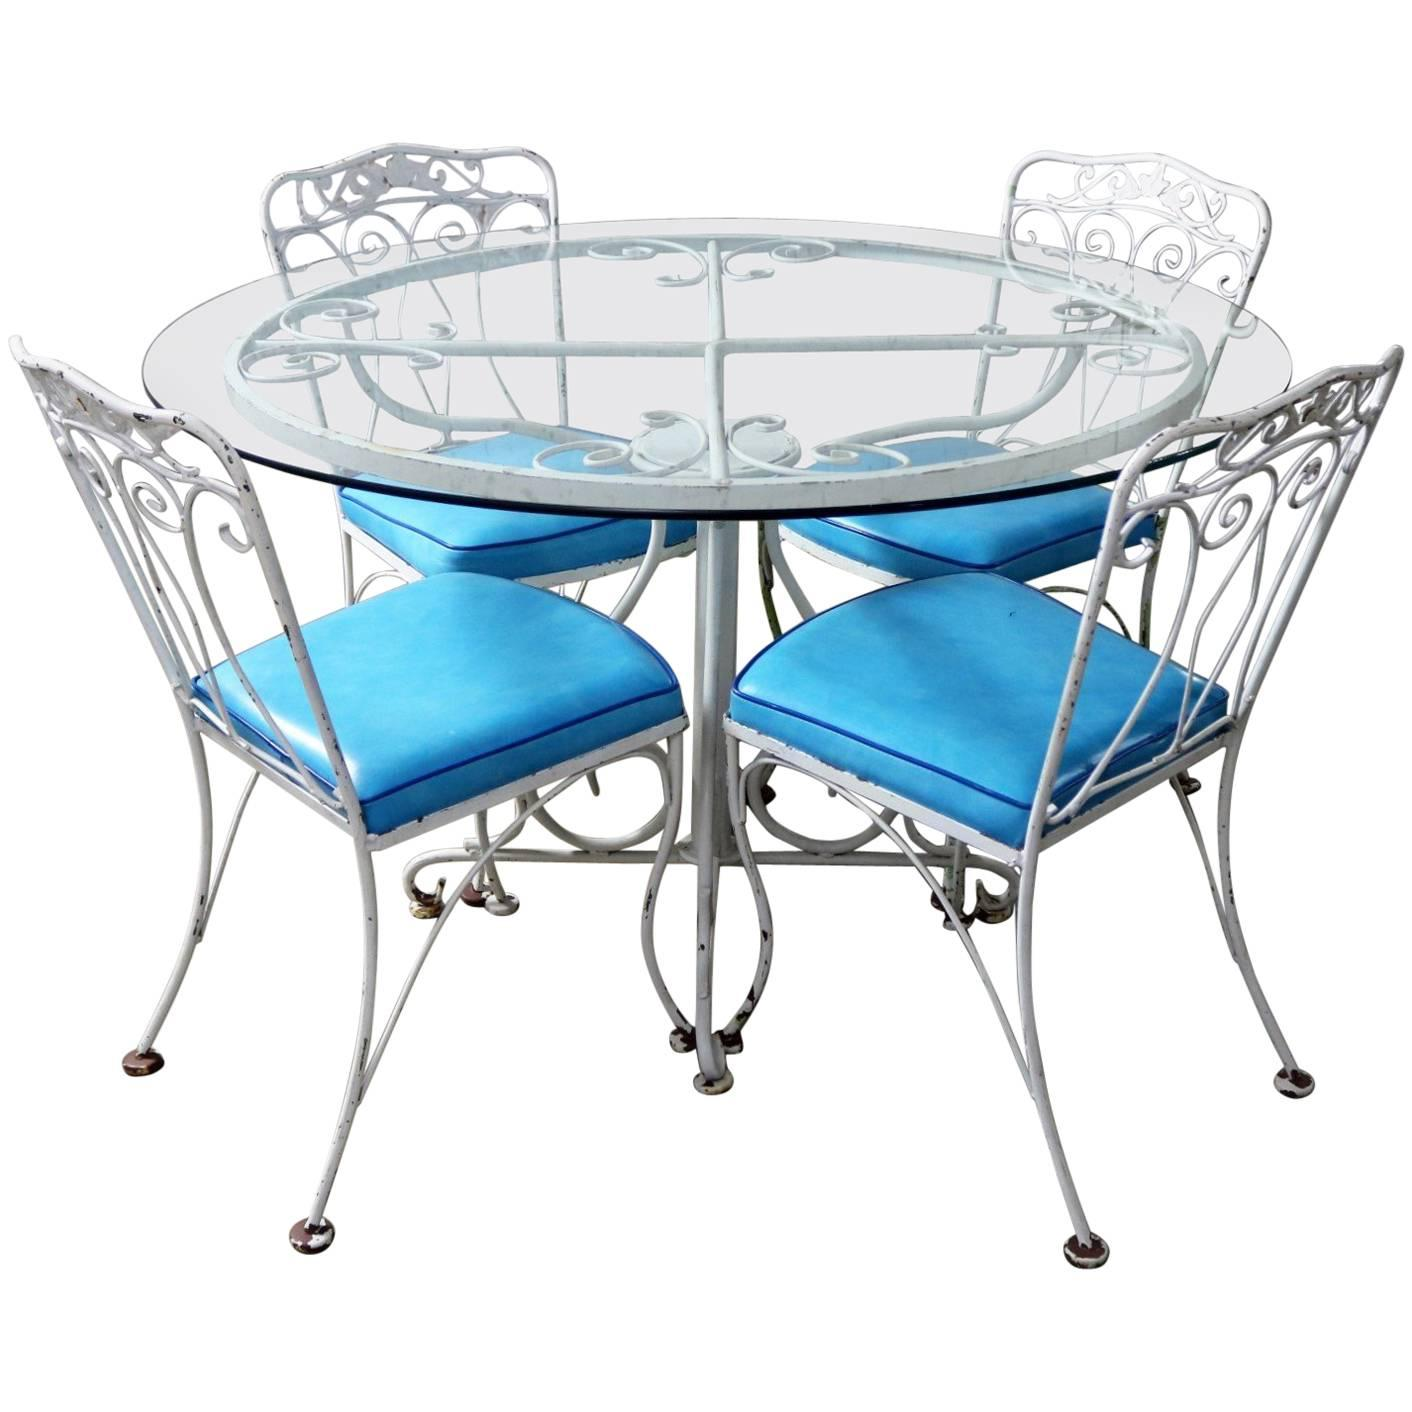 Salterini Style Wrought Iron Patio Set Round Table Four Chairs Turquoise  Seats For Sale